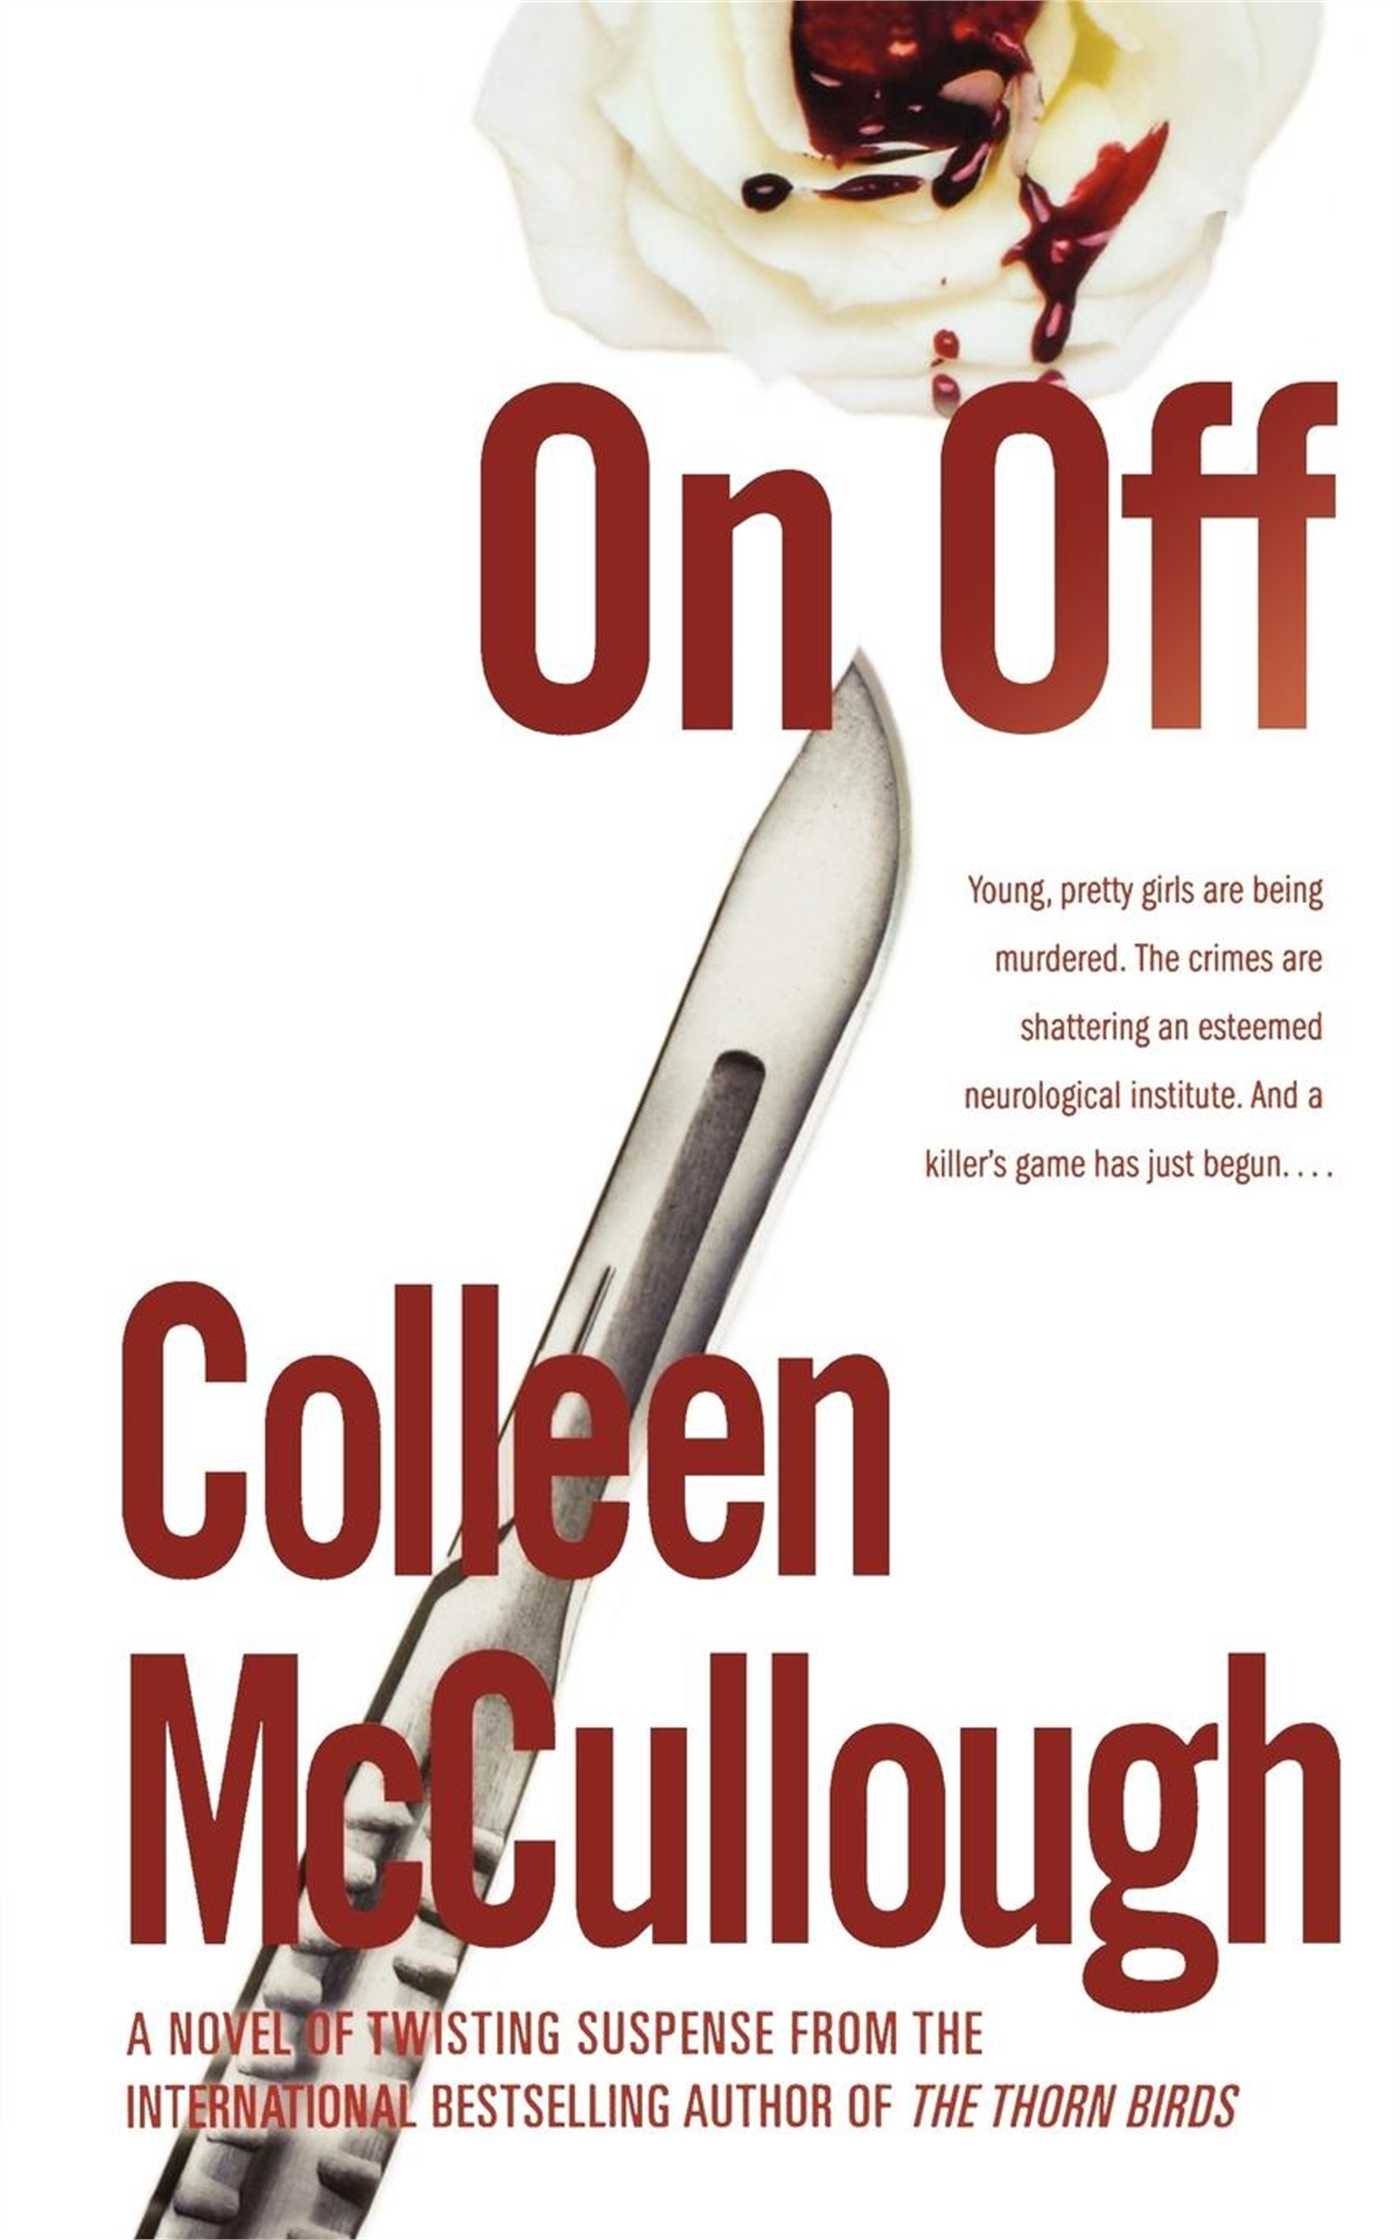 Colleen mccullough official publisher page simon schuster canada book cover image jpg on off ebook 9780743293235 fandeluxe Images